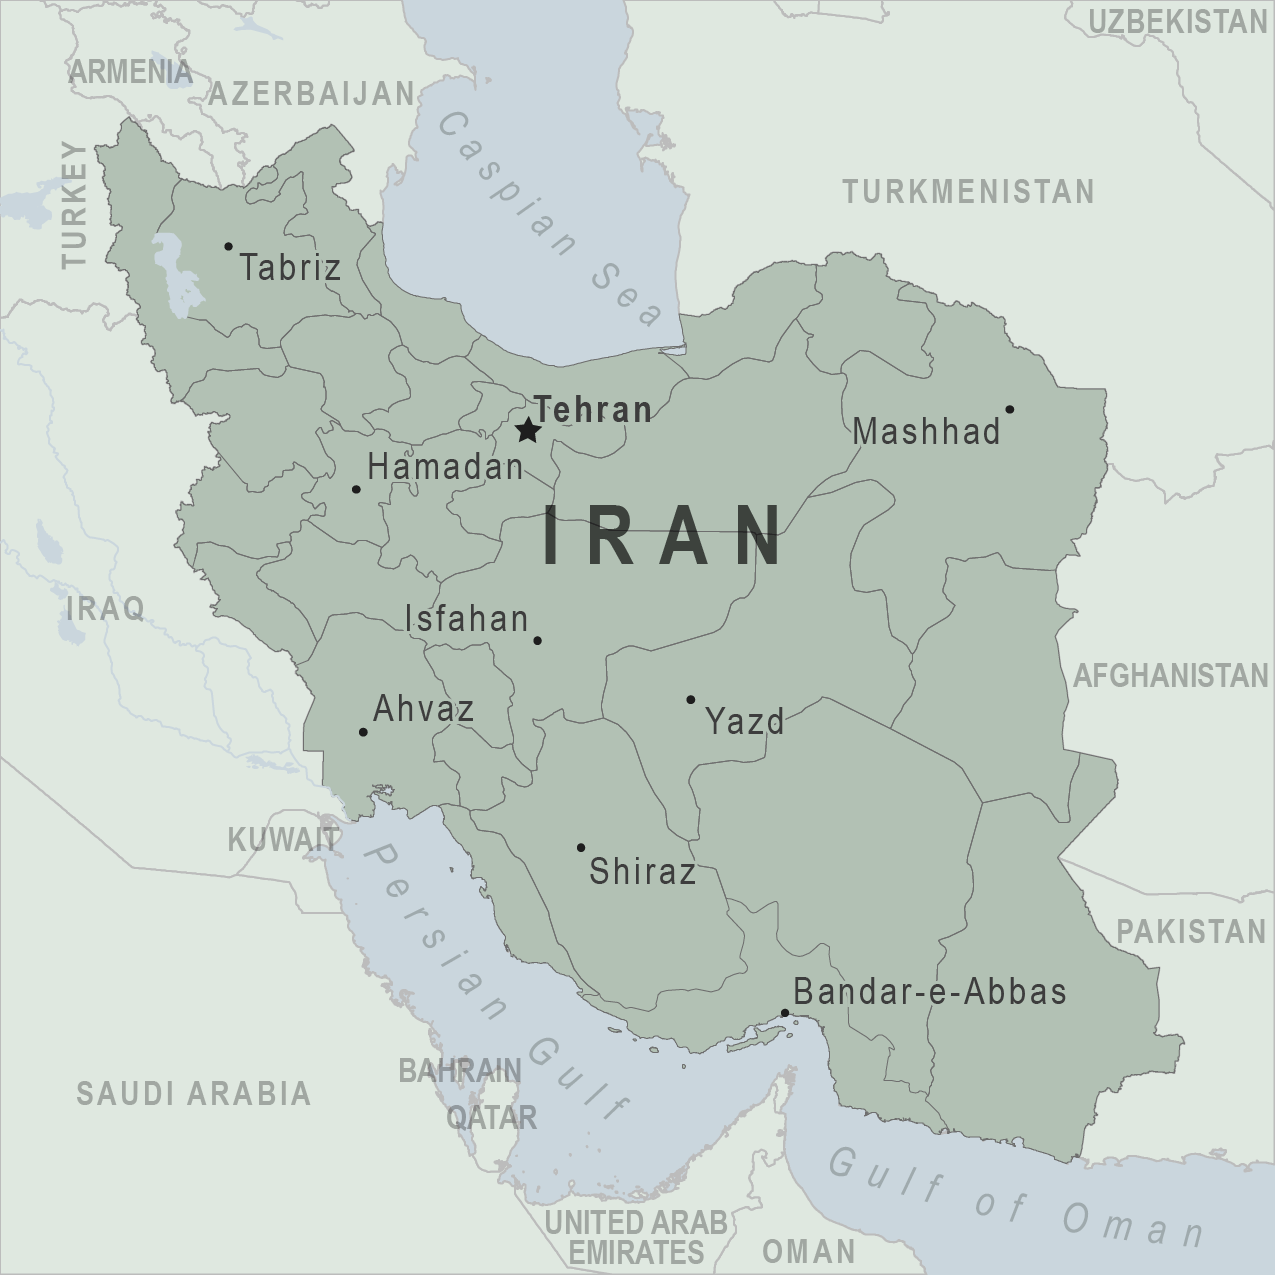 http://wwwnc.cdc.gov/travel/images/map-iran.png